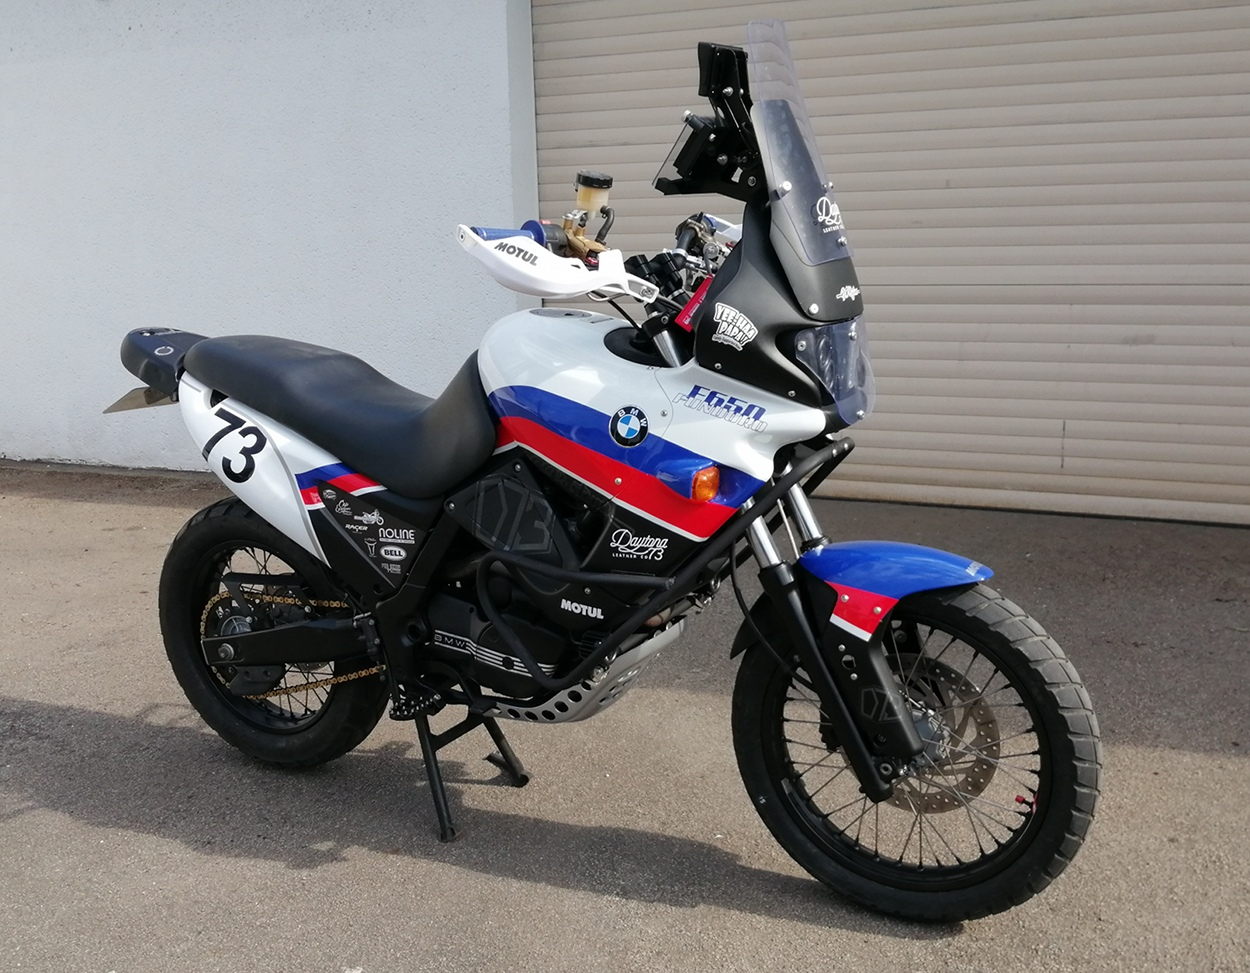 BMW-F650-GS-Funduro-Rally-14.jpg